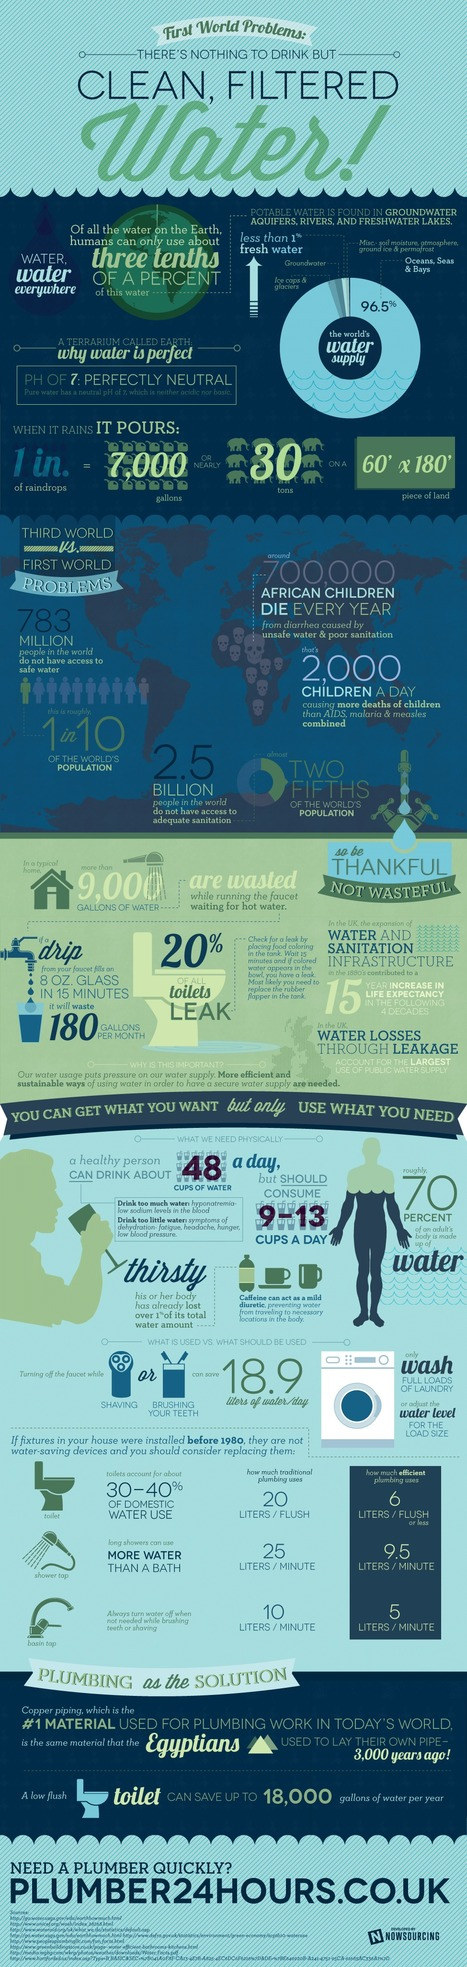 Water: Global facts + statistics [infographic] | Picturing It | Scoop.it